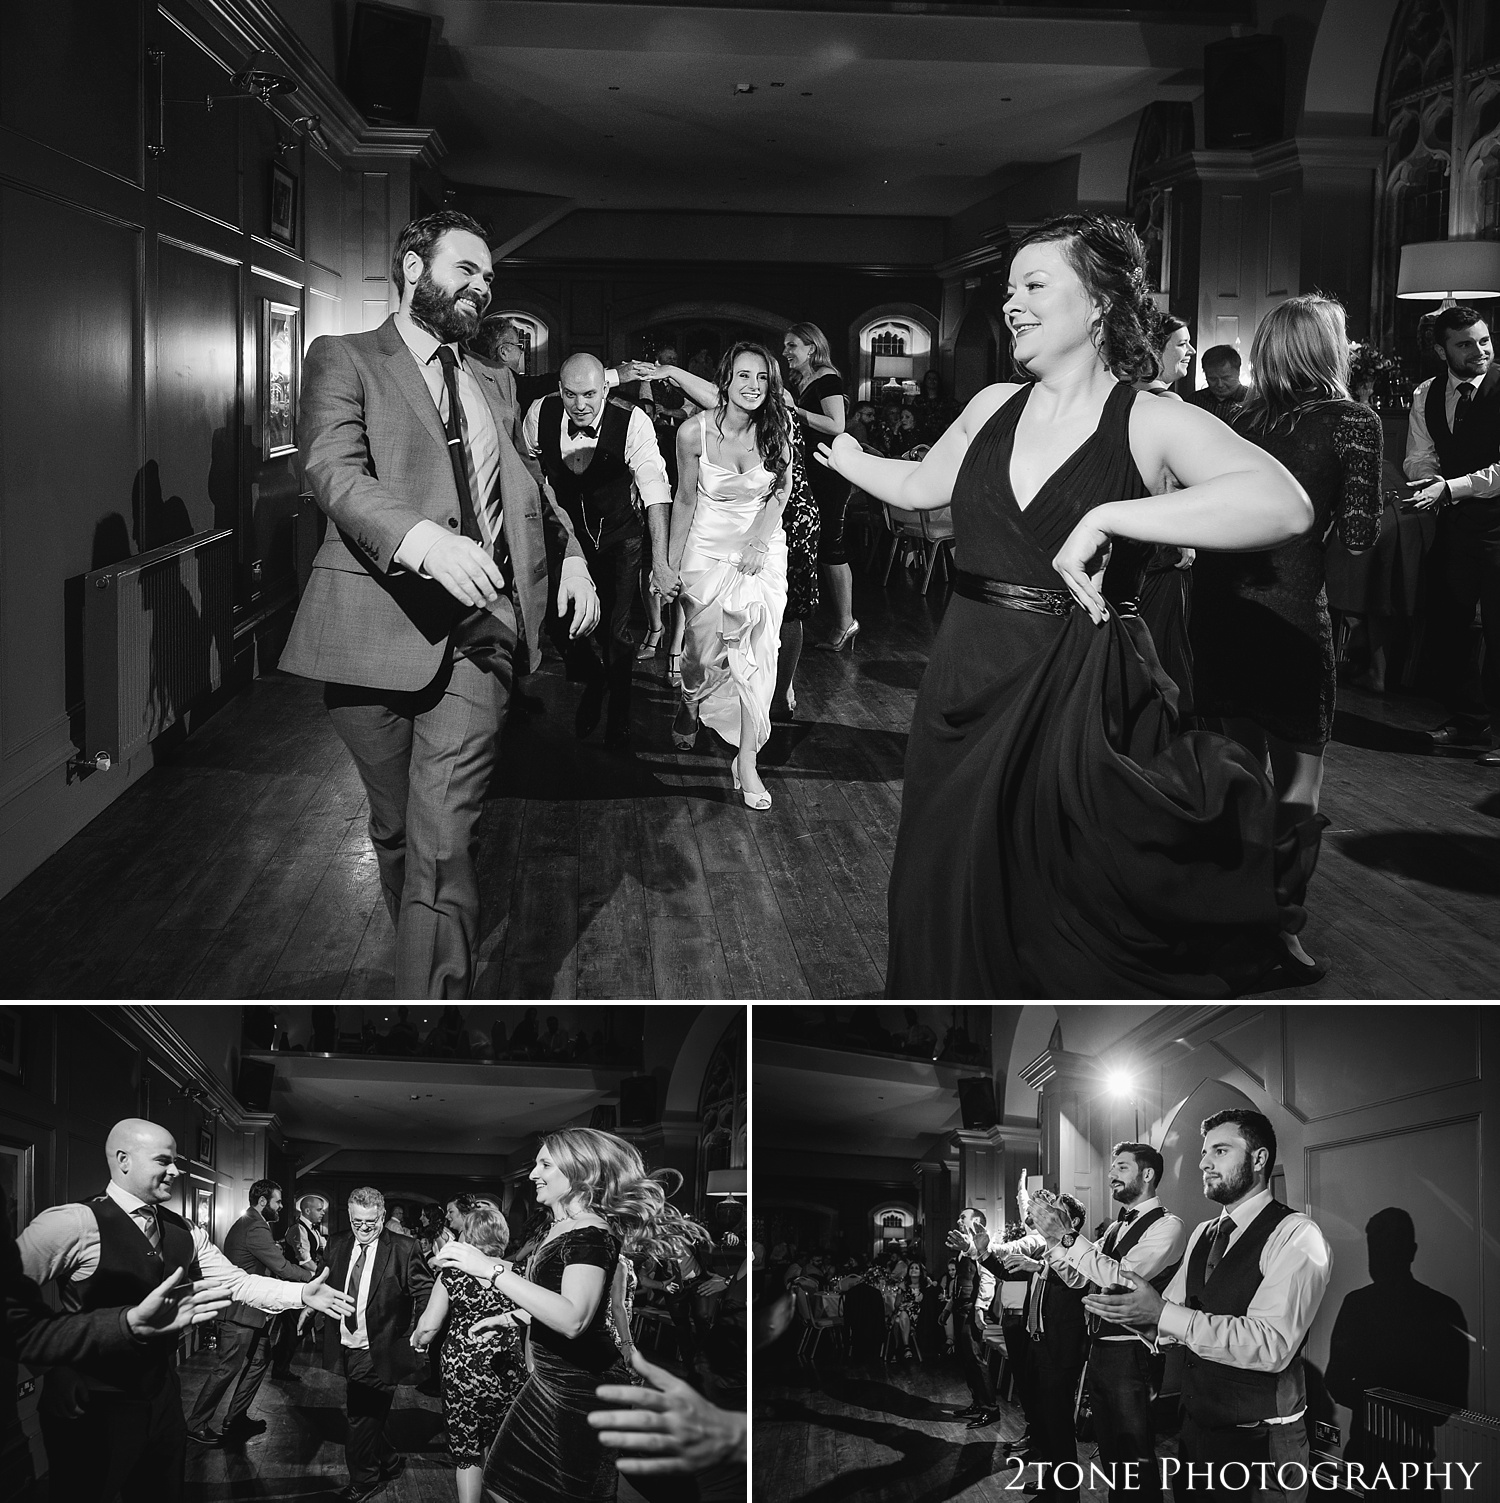 Wedding Cèilidh dance at Ellingham Hall. Winter wedding photography by www.2tonephotography.co.uk